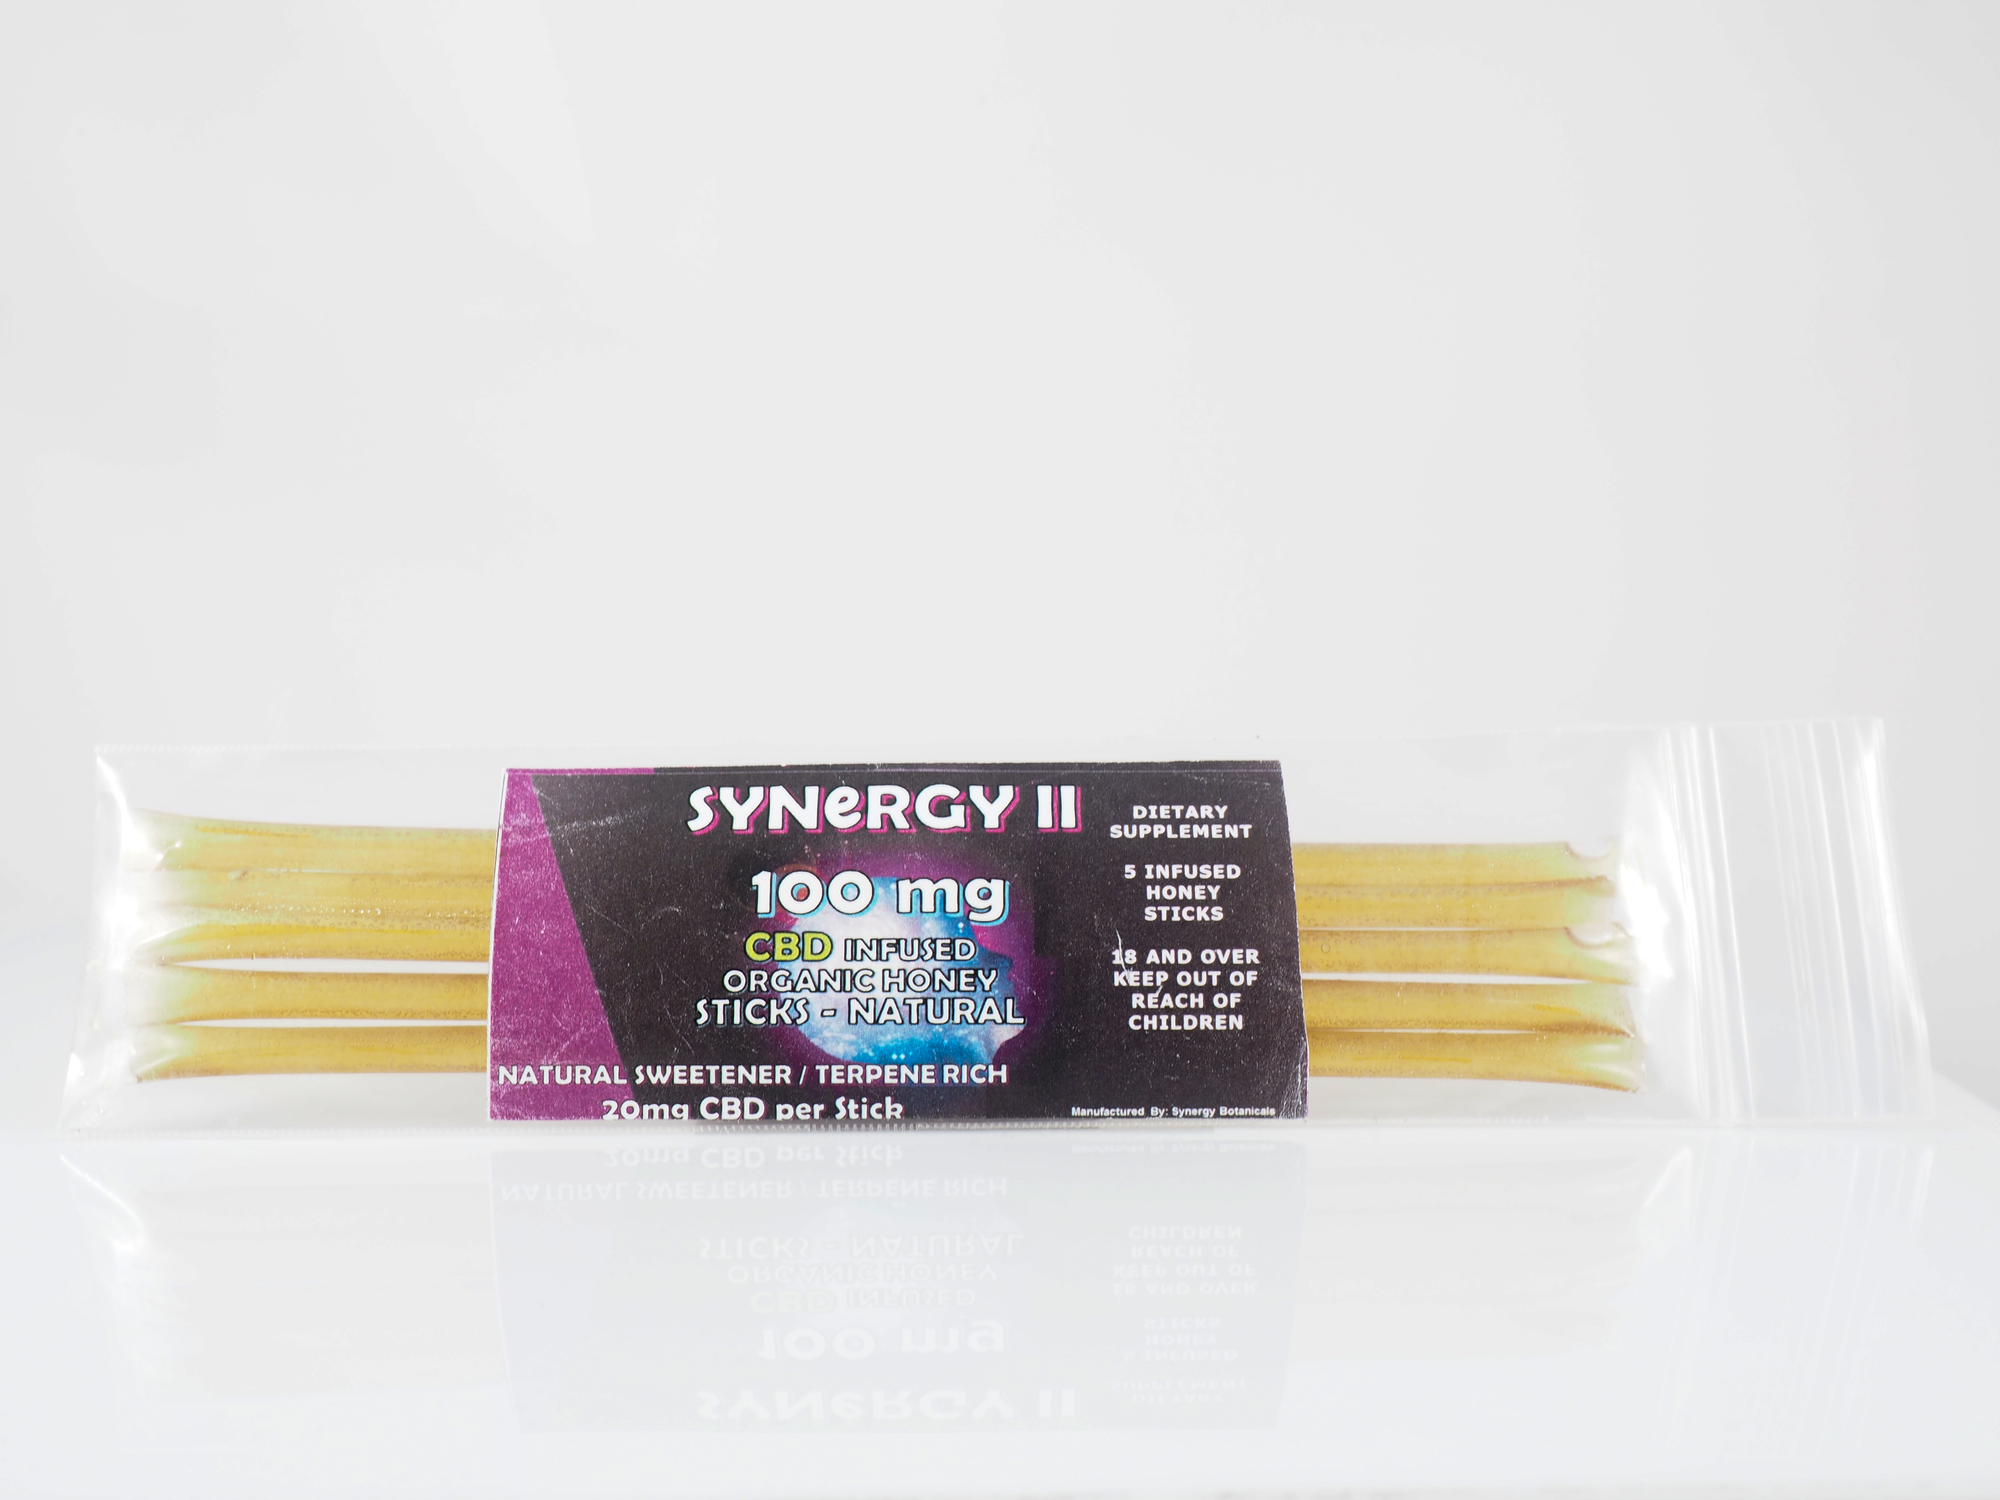 Synergy II CBD Infused Honey Sticks 100 mg